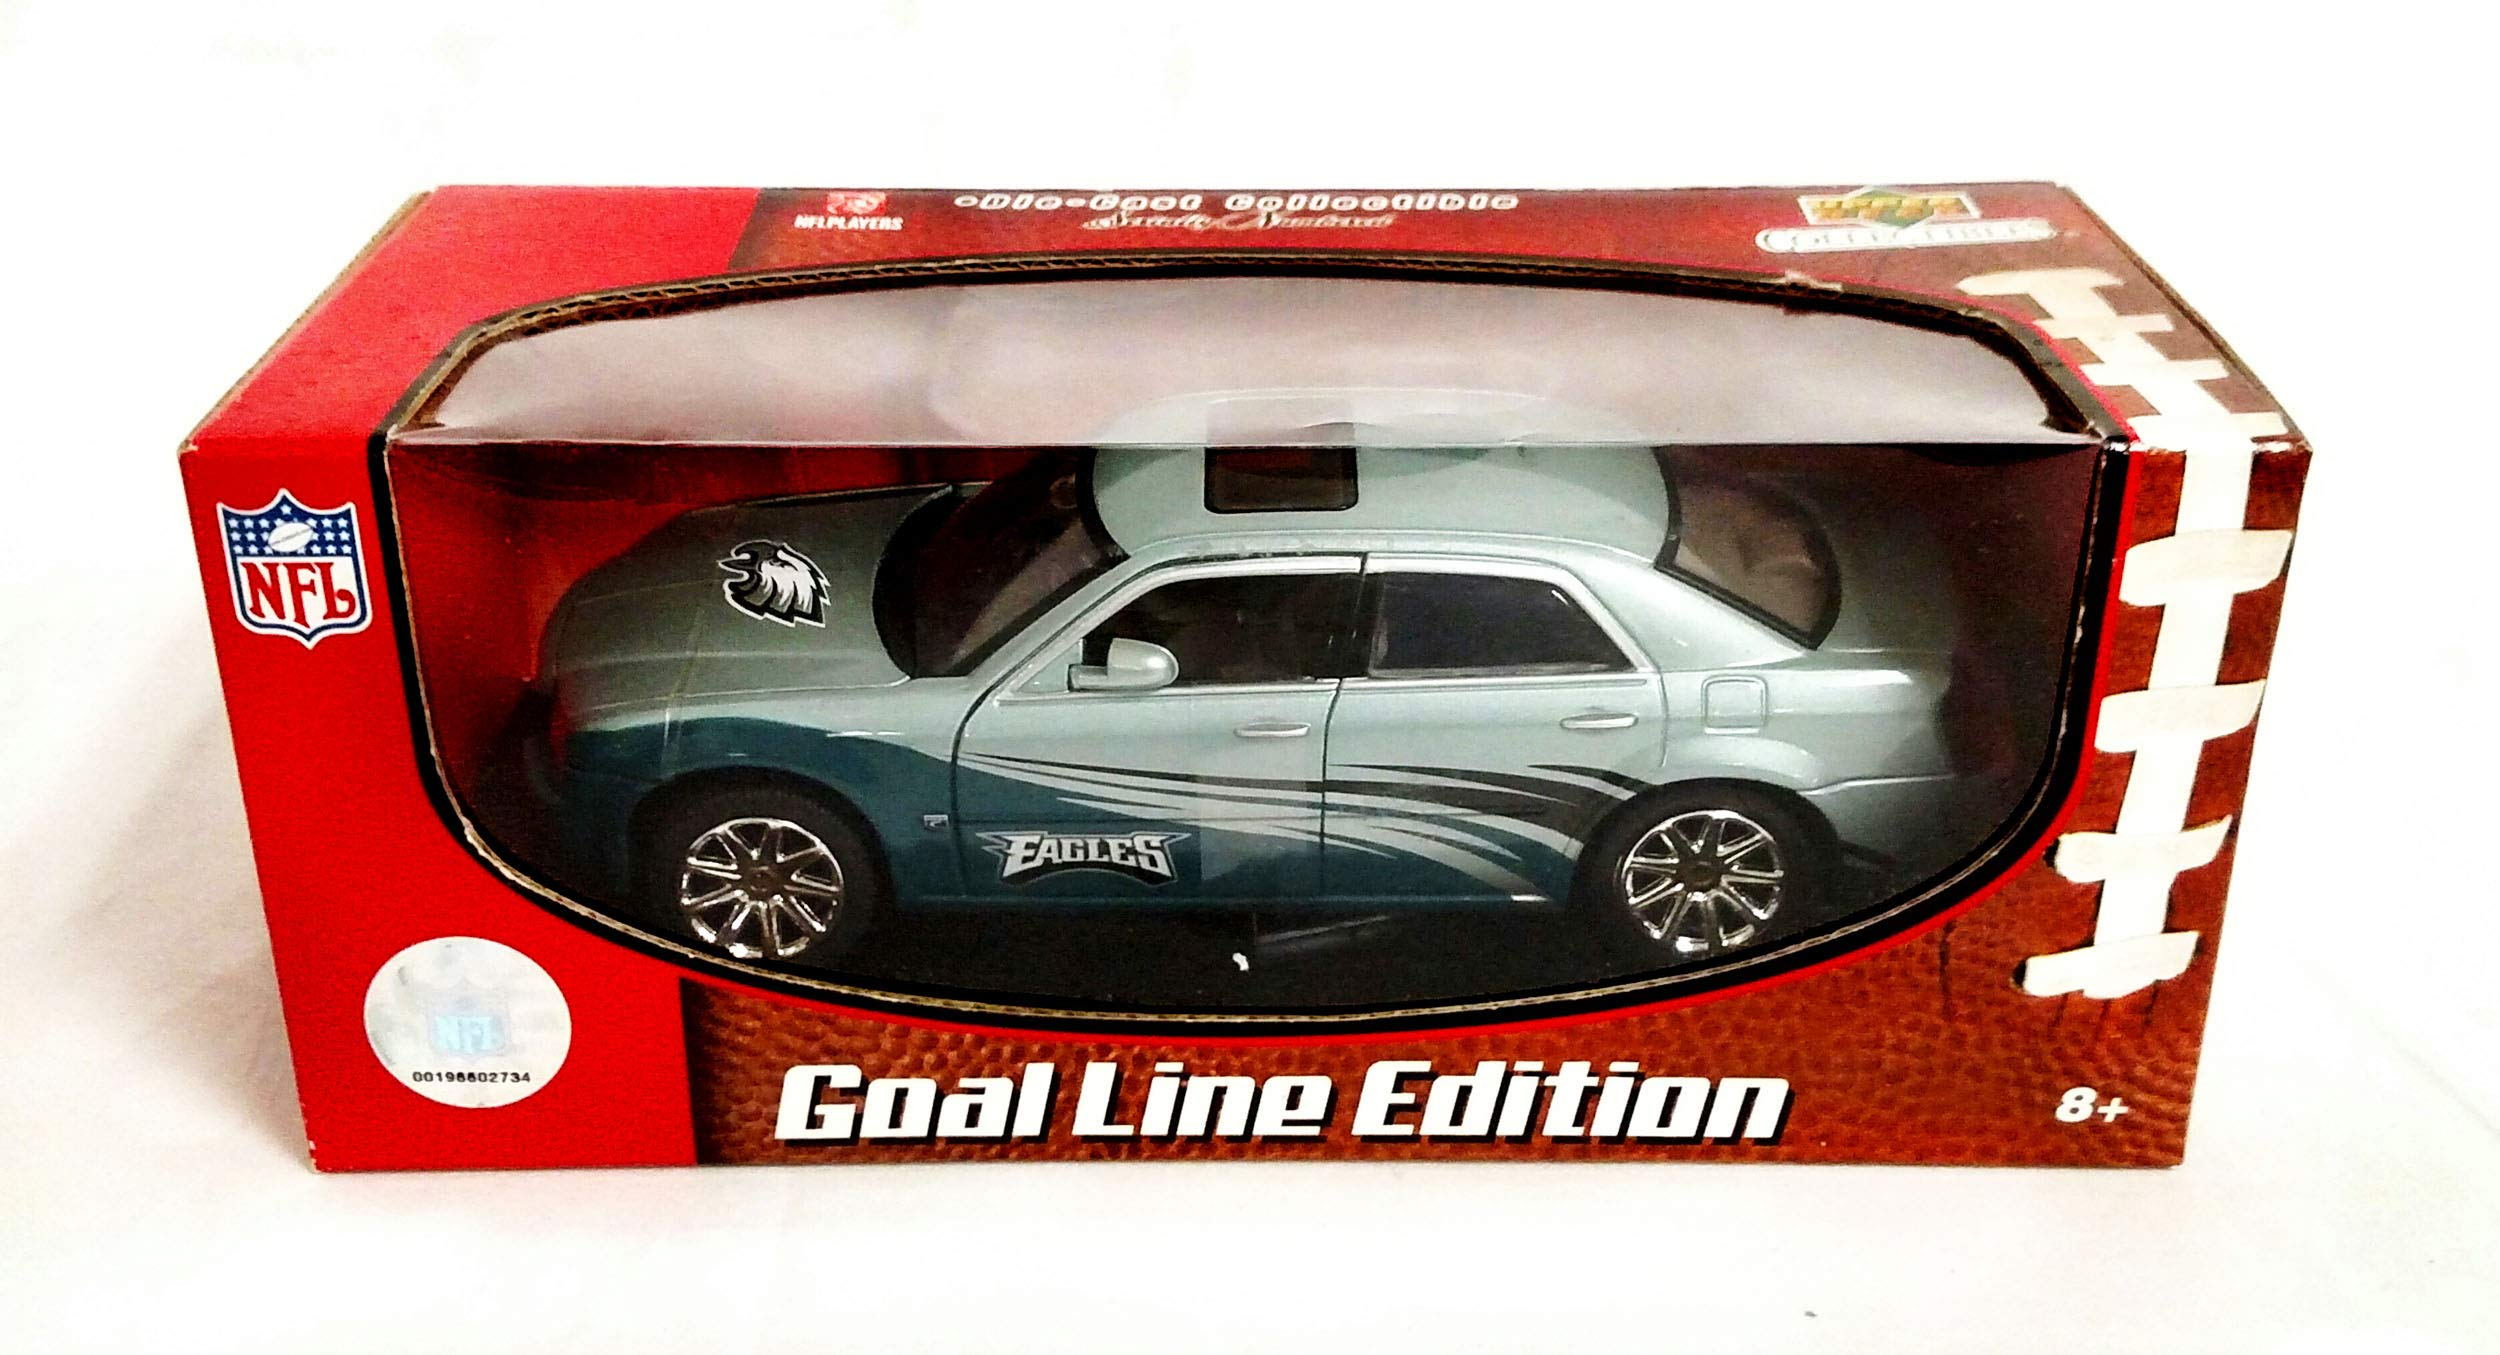 Philadelphia Eagles 2007 Goal Line Limited Edition Chrylser 300C Hemi Die Cast Collectible